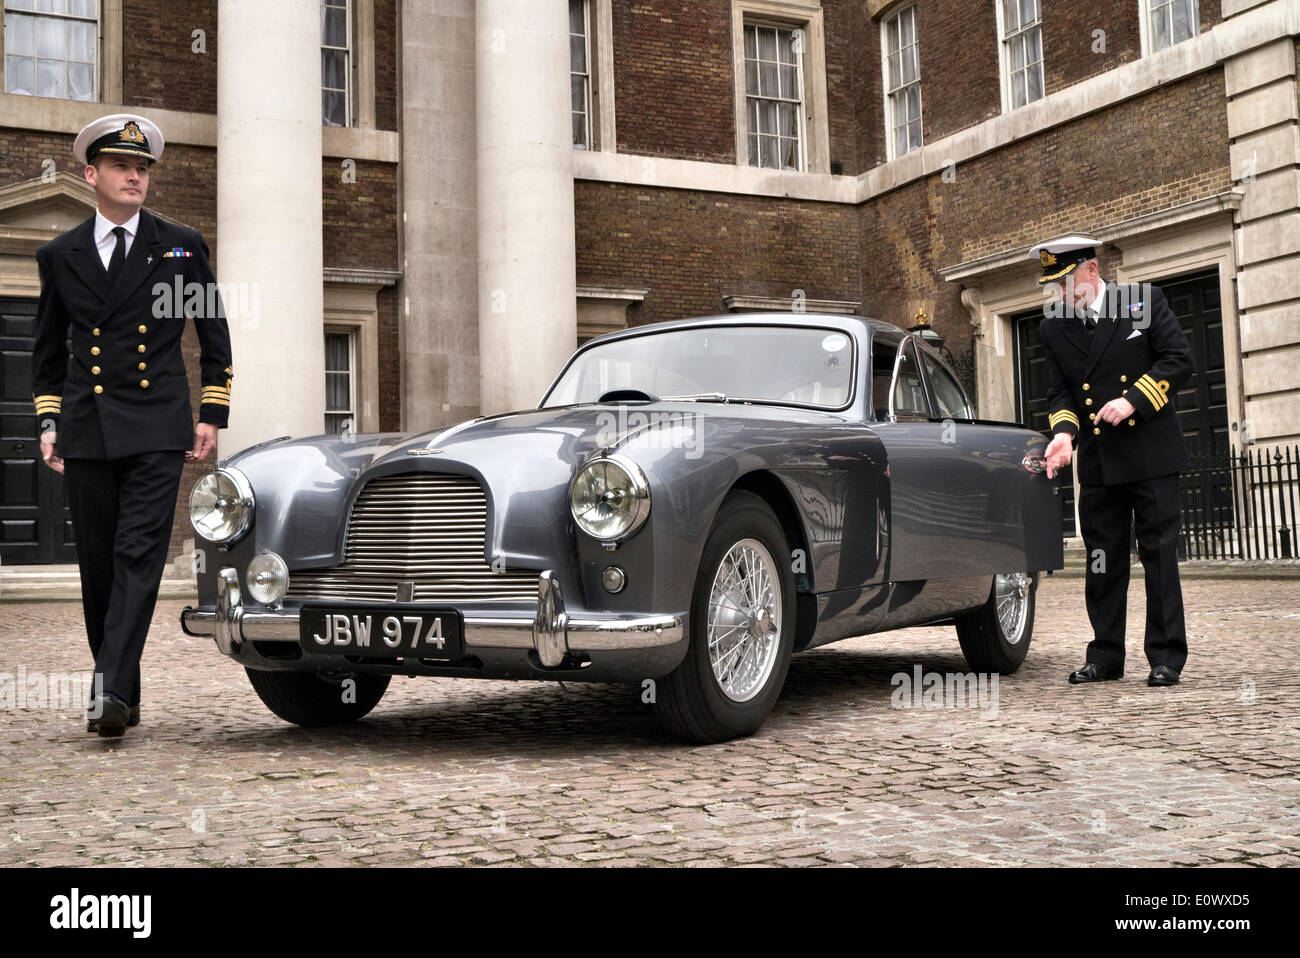 Whitehall, London, UK. 20th May 2014. 1954 Aston Martin DB2/4 thought to be the inspiration for Ian Fleming's Commander James Bond 007. Photographed in the Old Admirality Building in White Hall with two naval Commander's. Credit:  Martyn Goddard/Alamy Live News - Stock Image